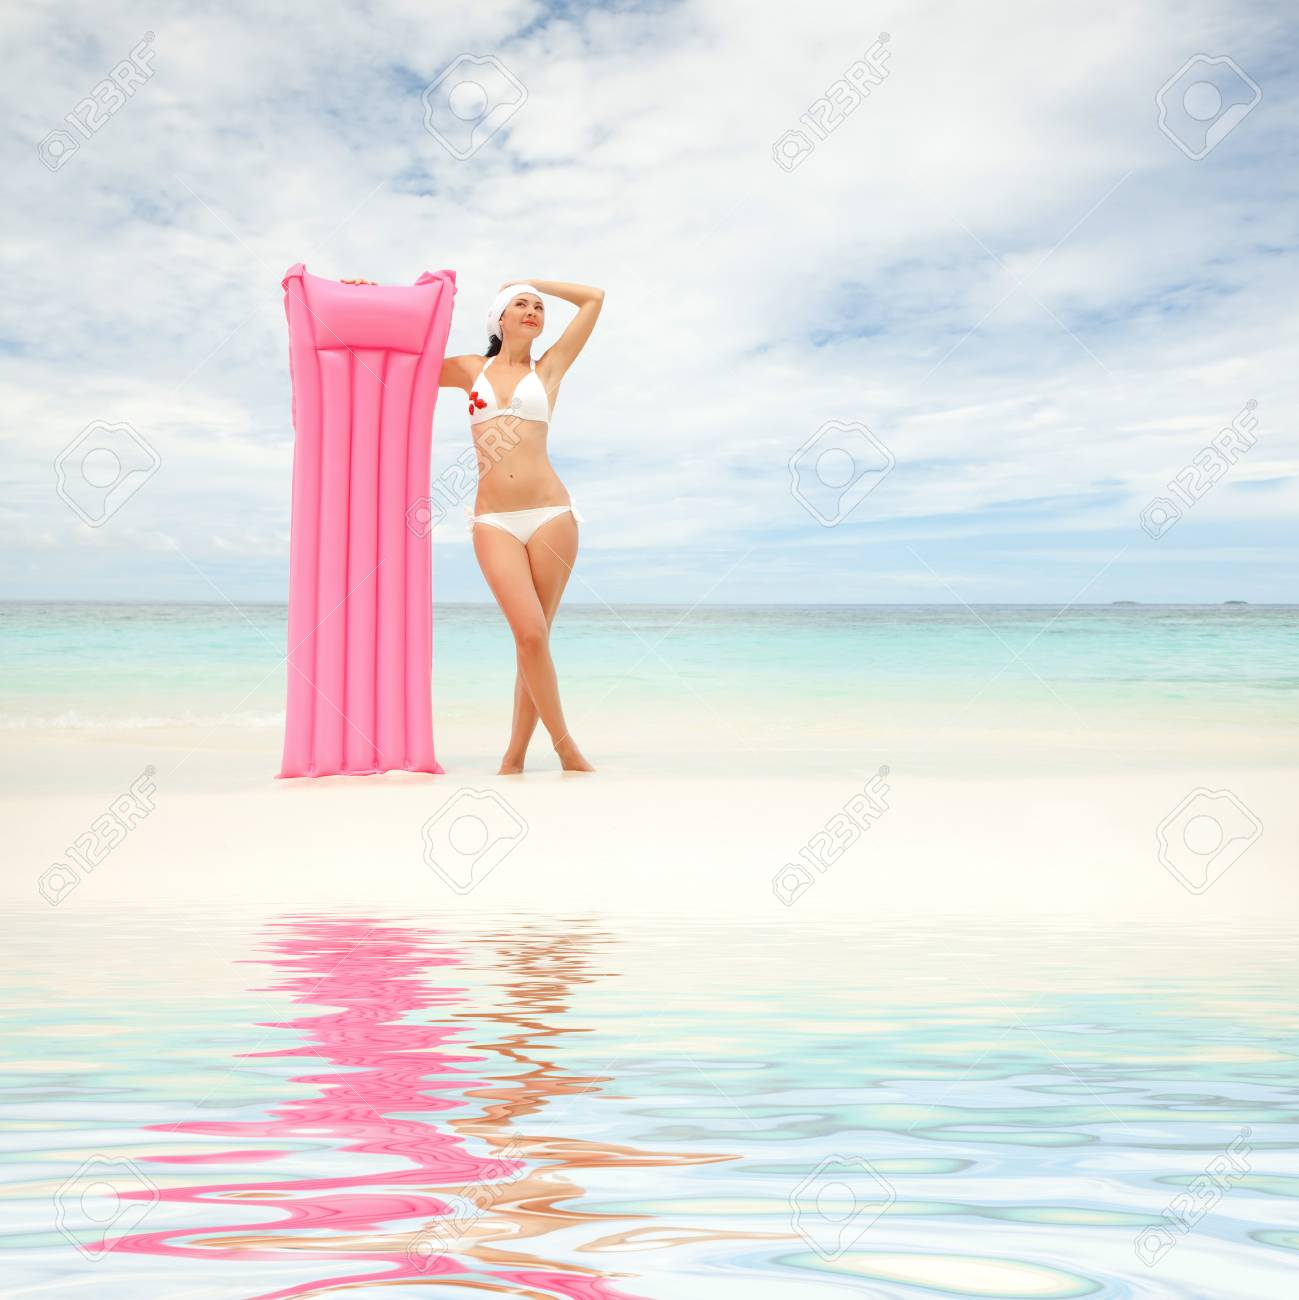 Happy woman with inflatable mattress on the beach Stock Photo - 12941327